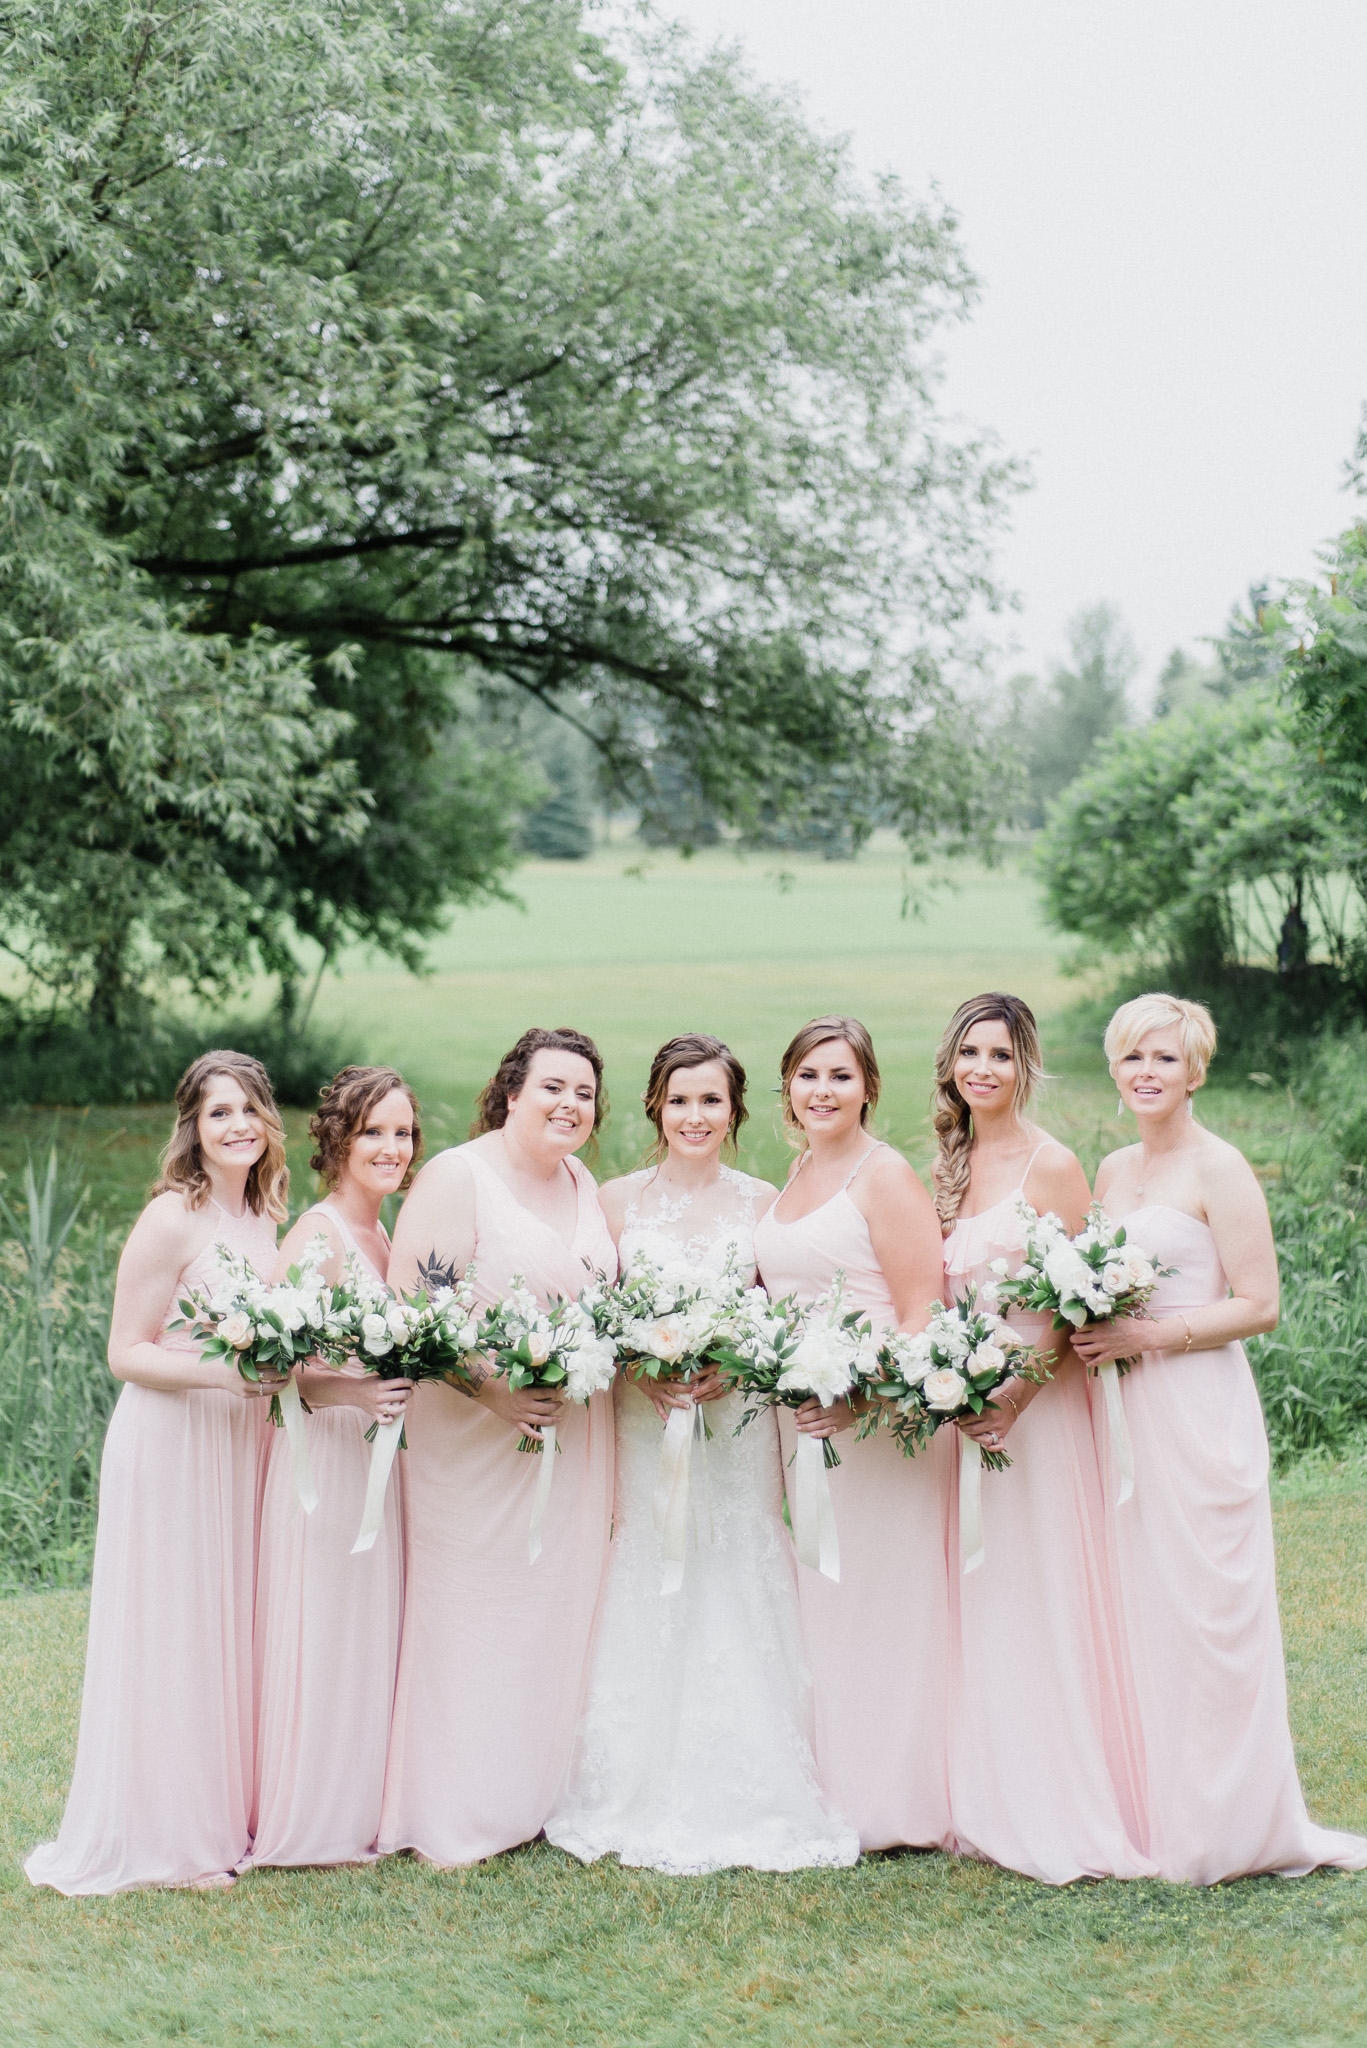 Blush Pink, White, Gold and Greenery Wedding Photos by Jenn Kavanagh Photography